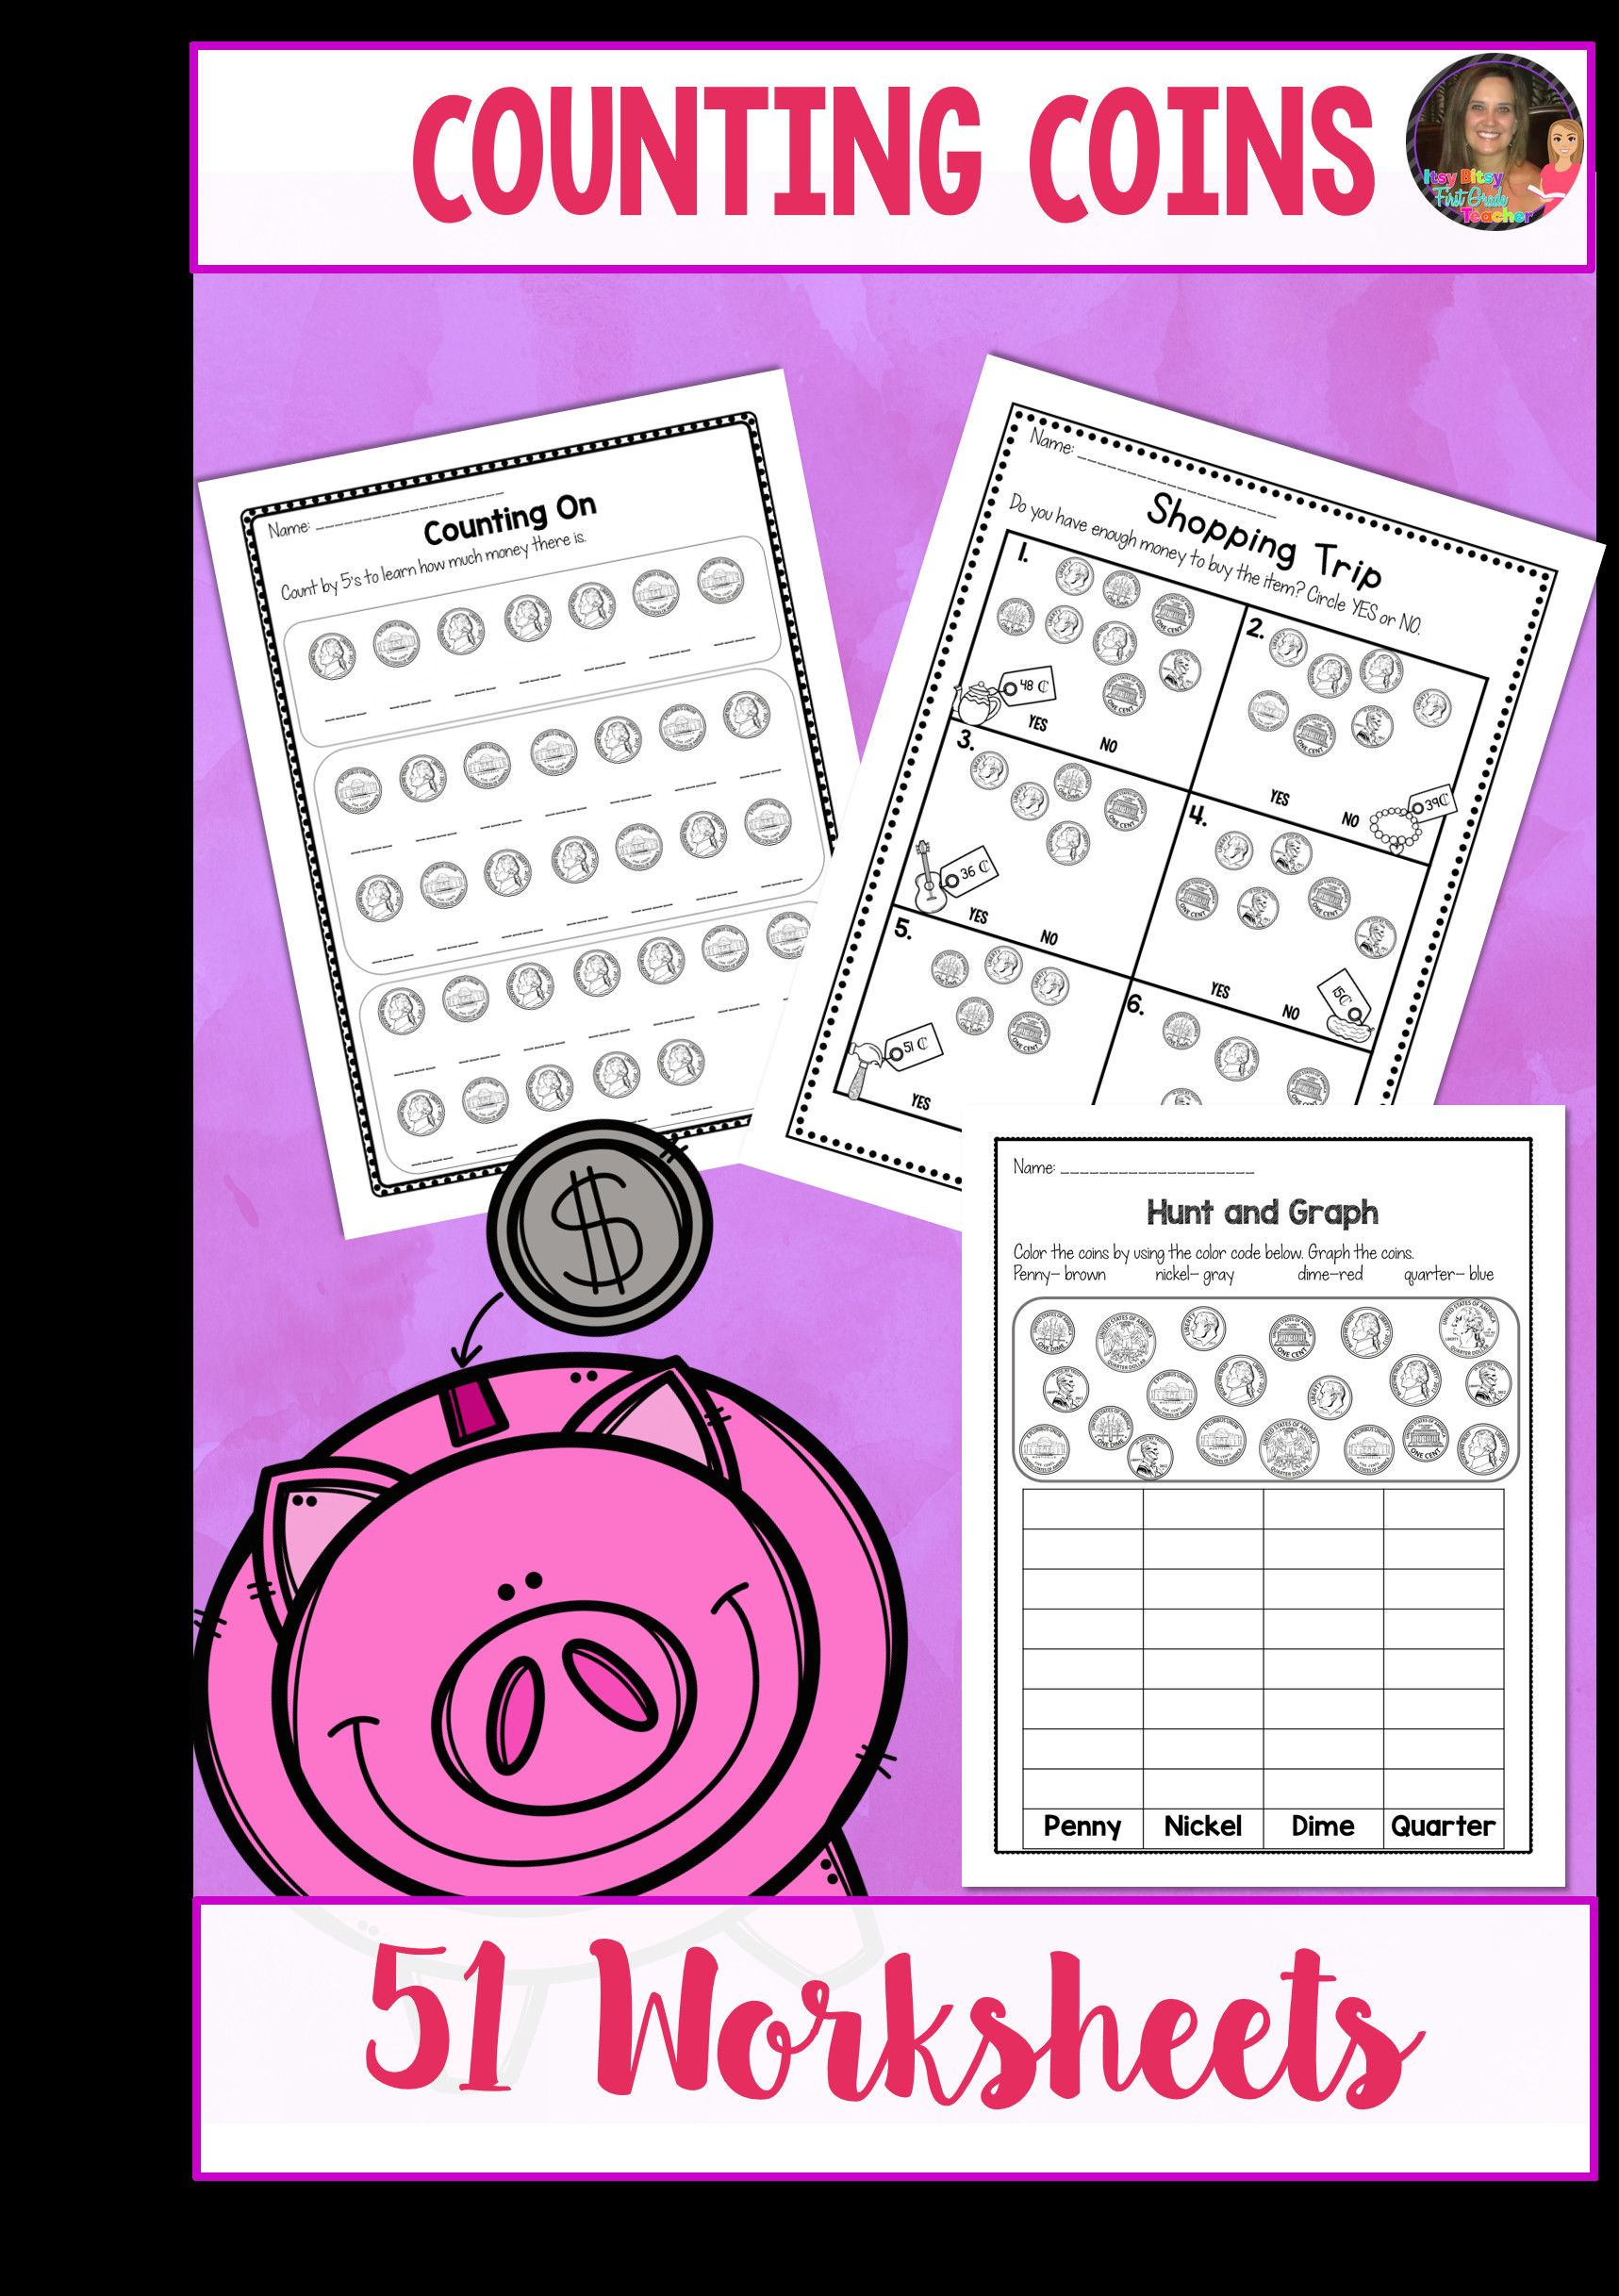 5 Nickel Worksheet Preschool In